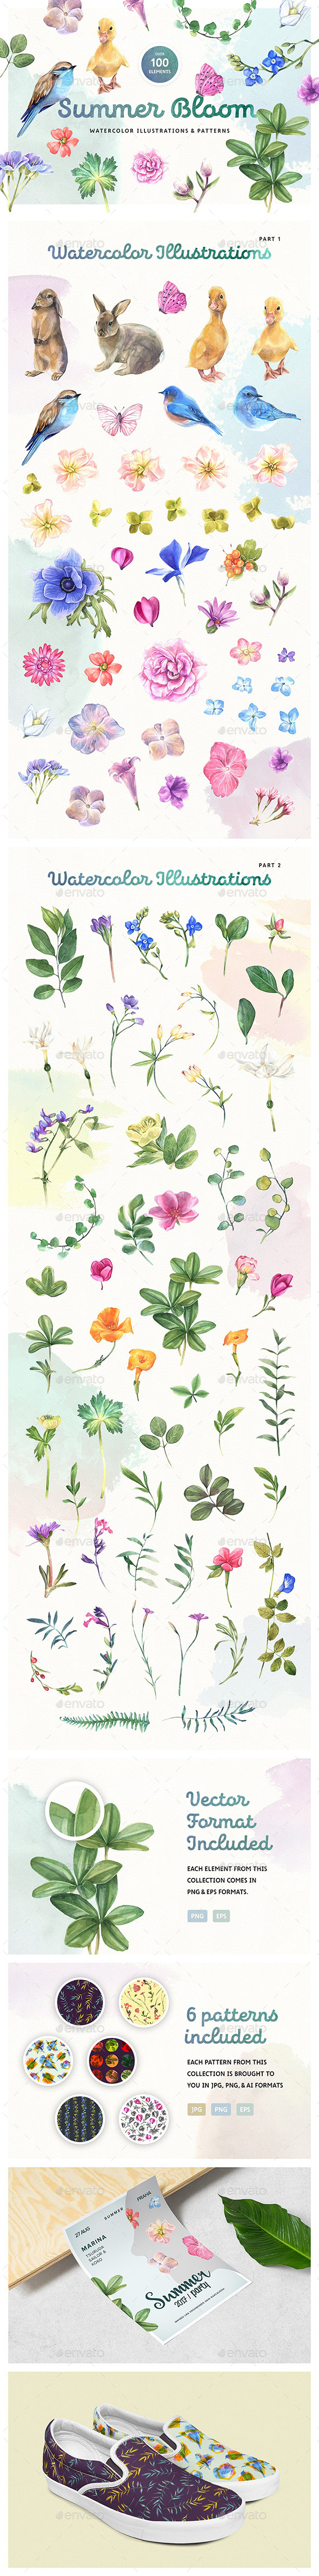 Summer Bloom Watercolor Set - Illustrations Graphics